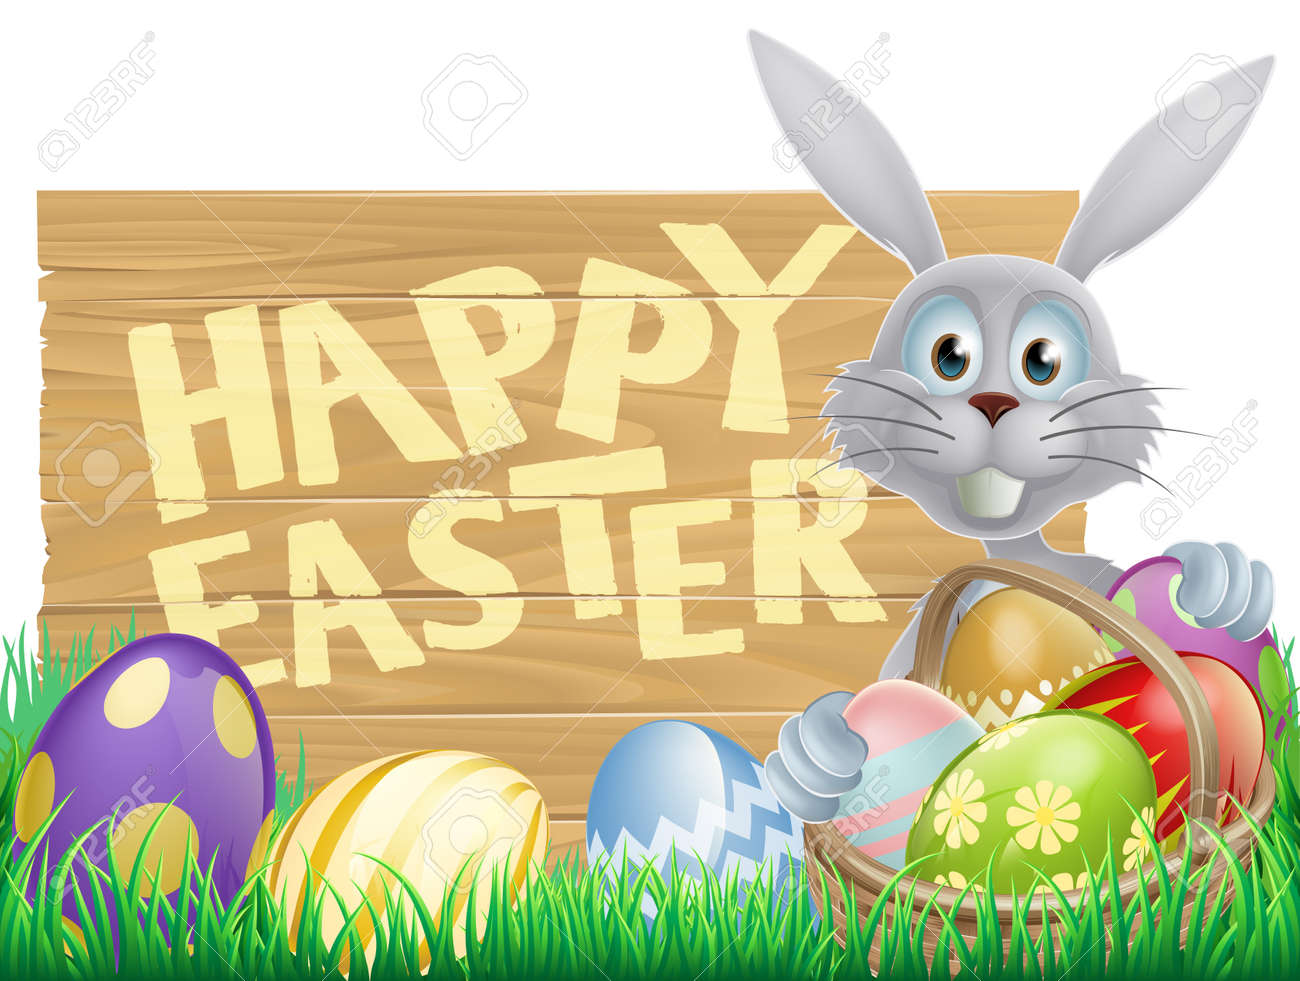 Easter wood sign reading Happy Easter with the Easter bunny and decorated Easter eggs Stock Vector - 25210384